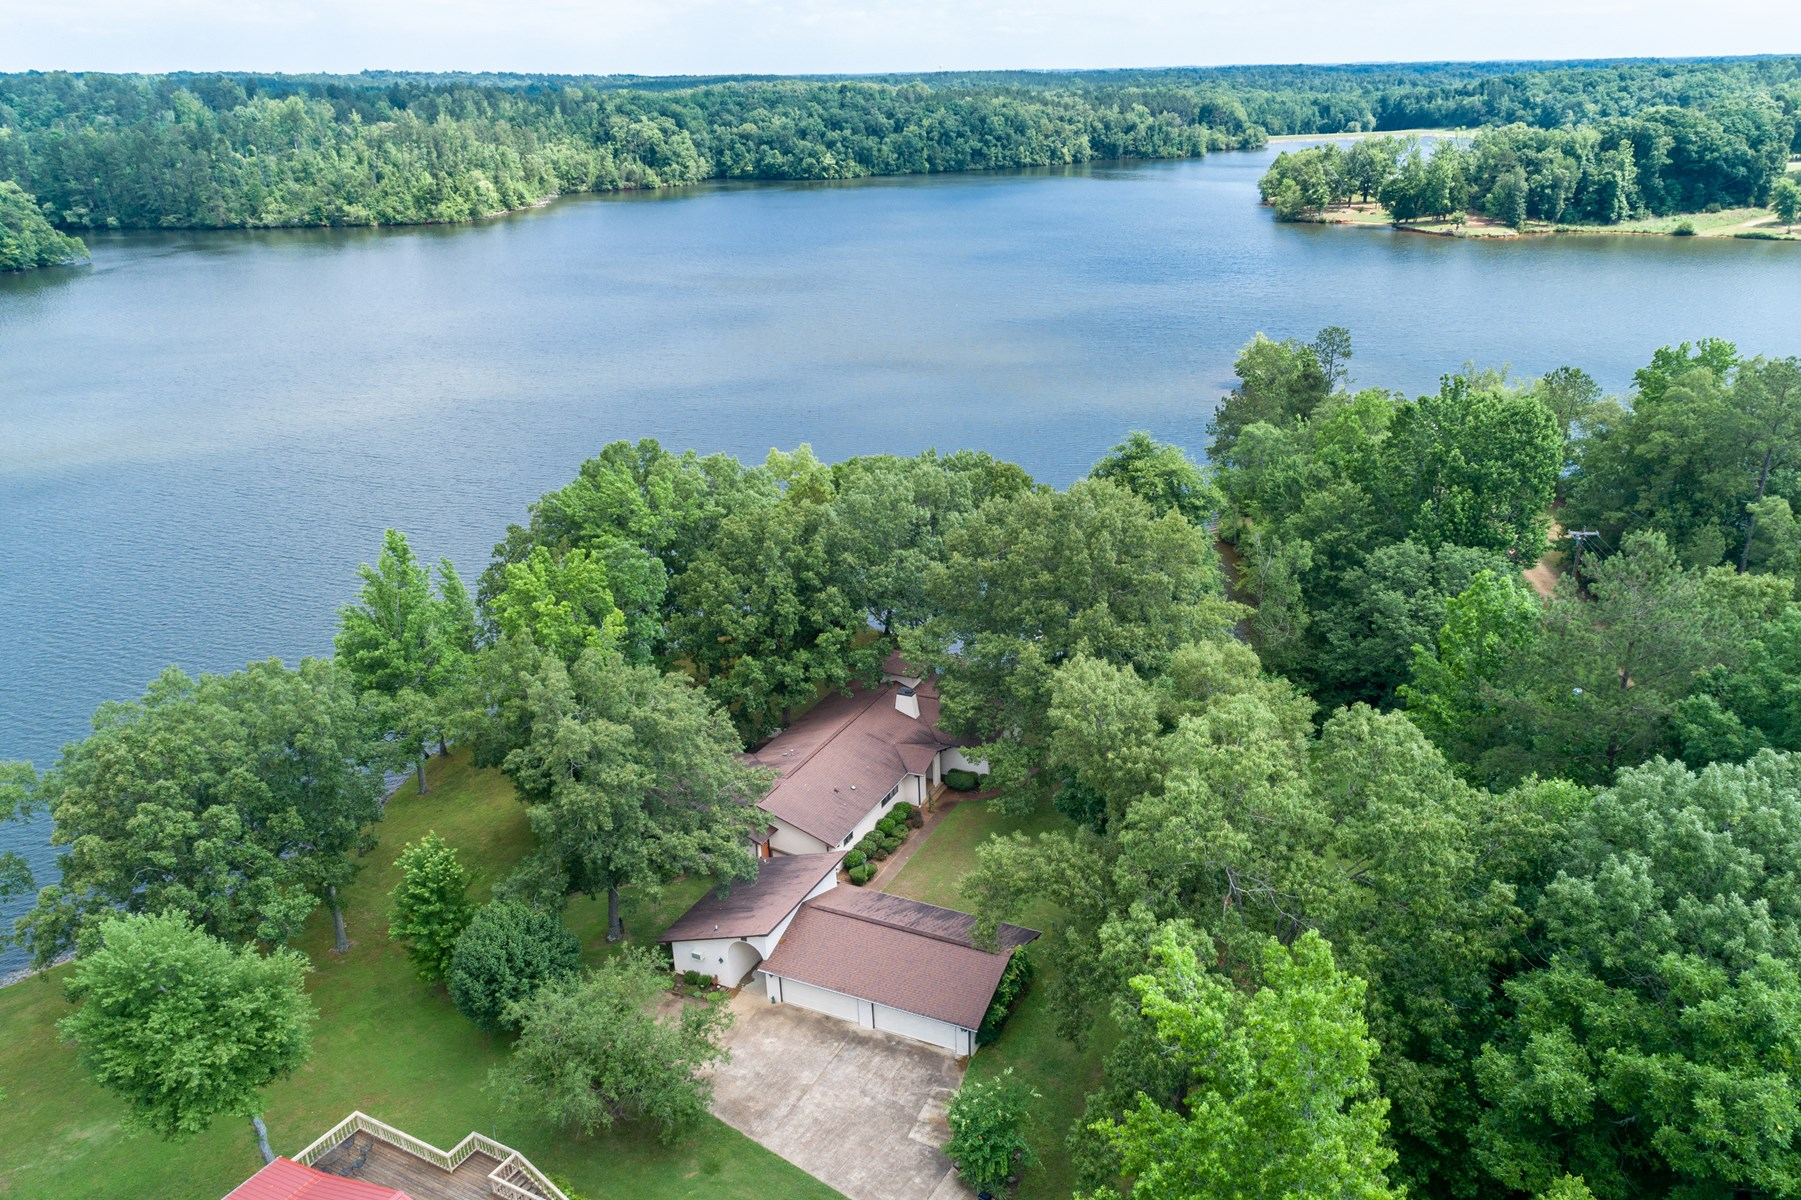 Waterfront Home For Sale On Pine Lake In Lexington, TN